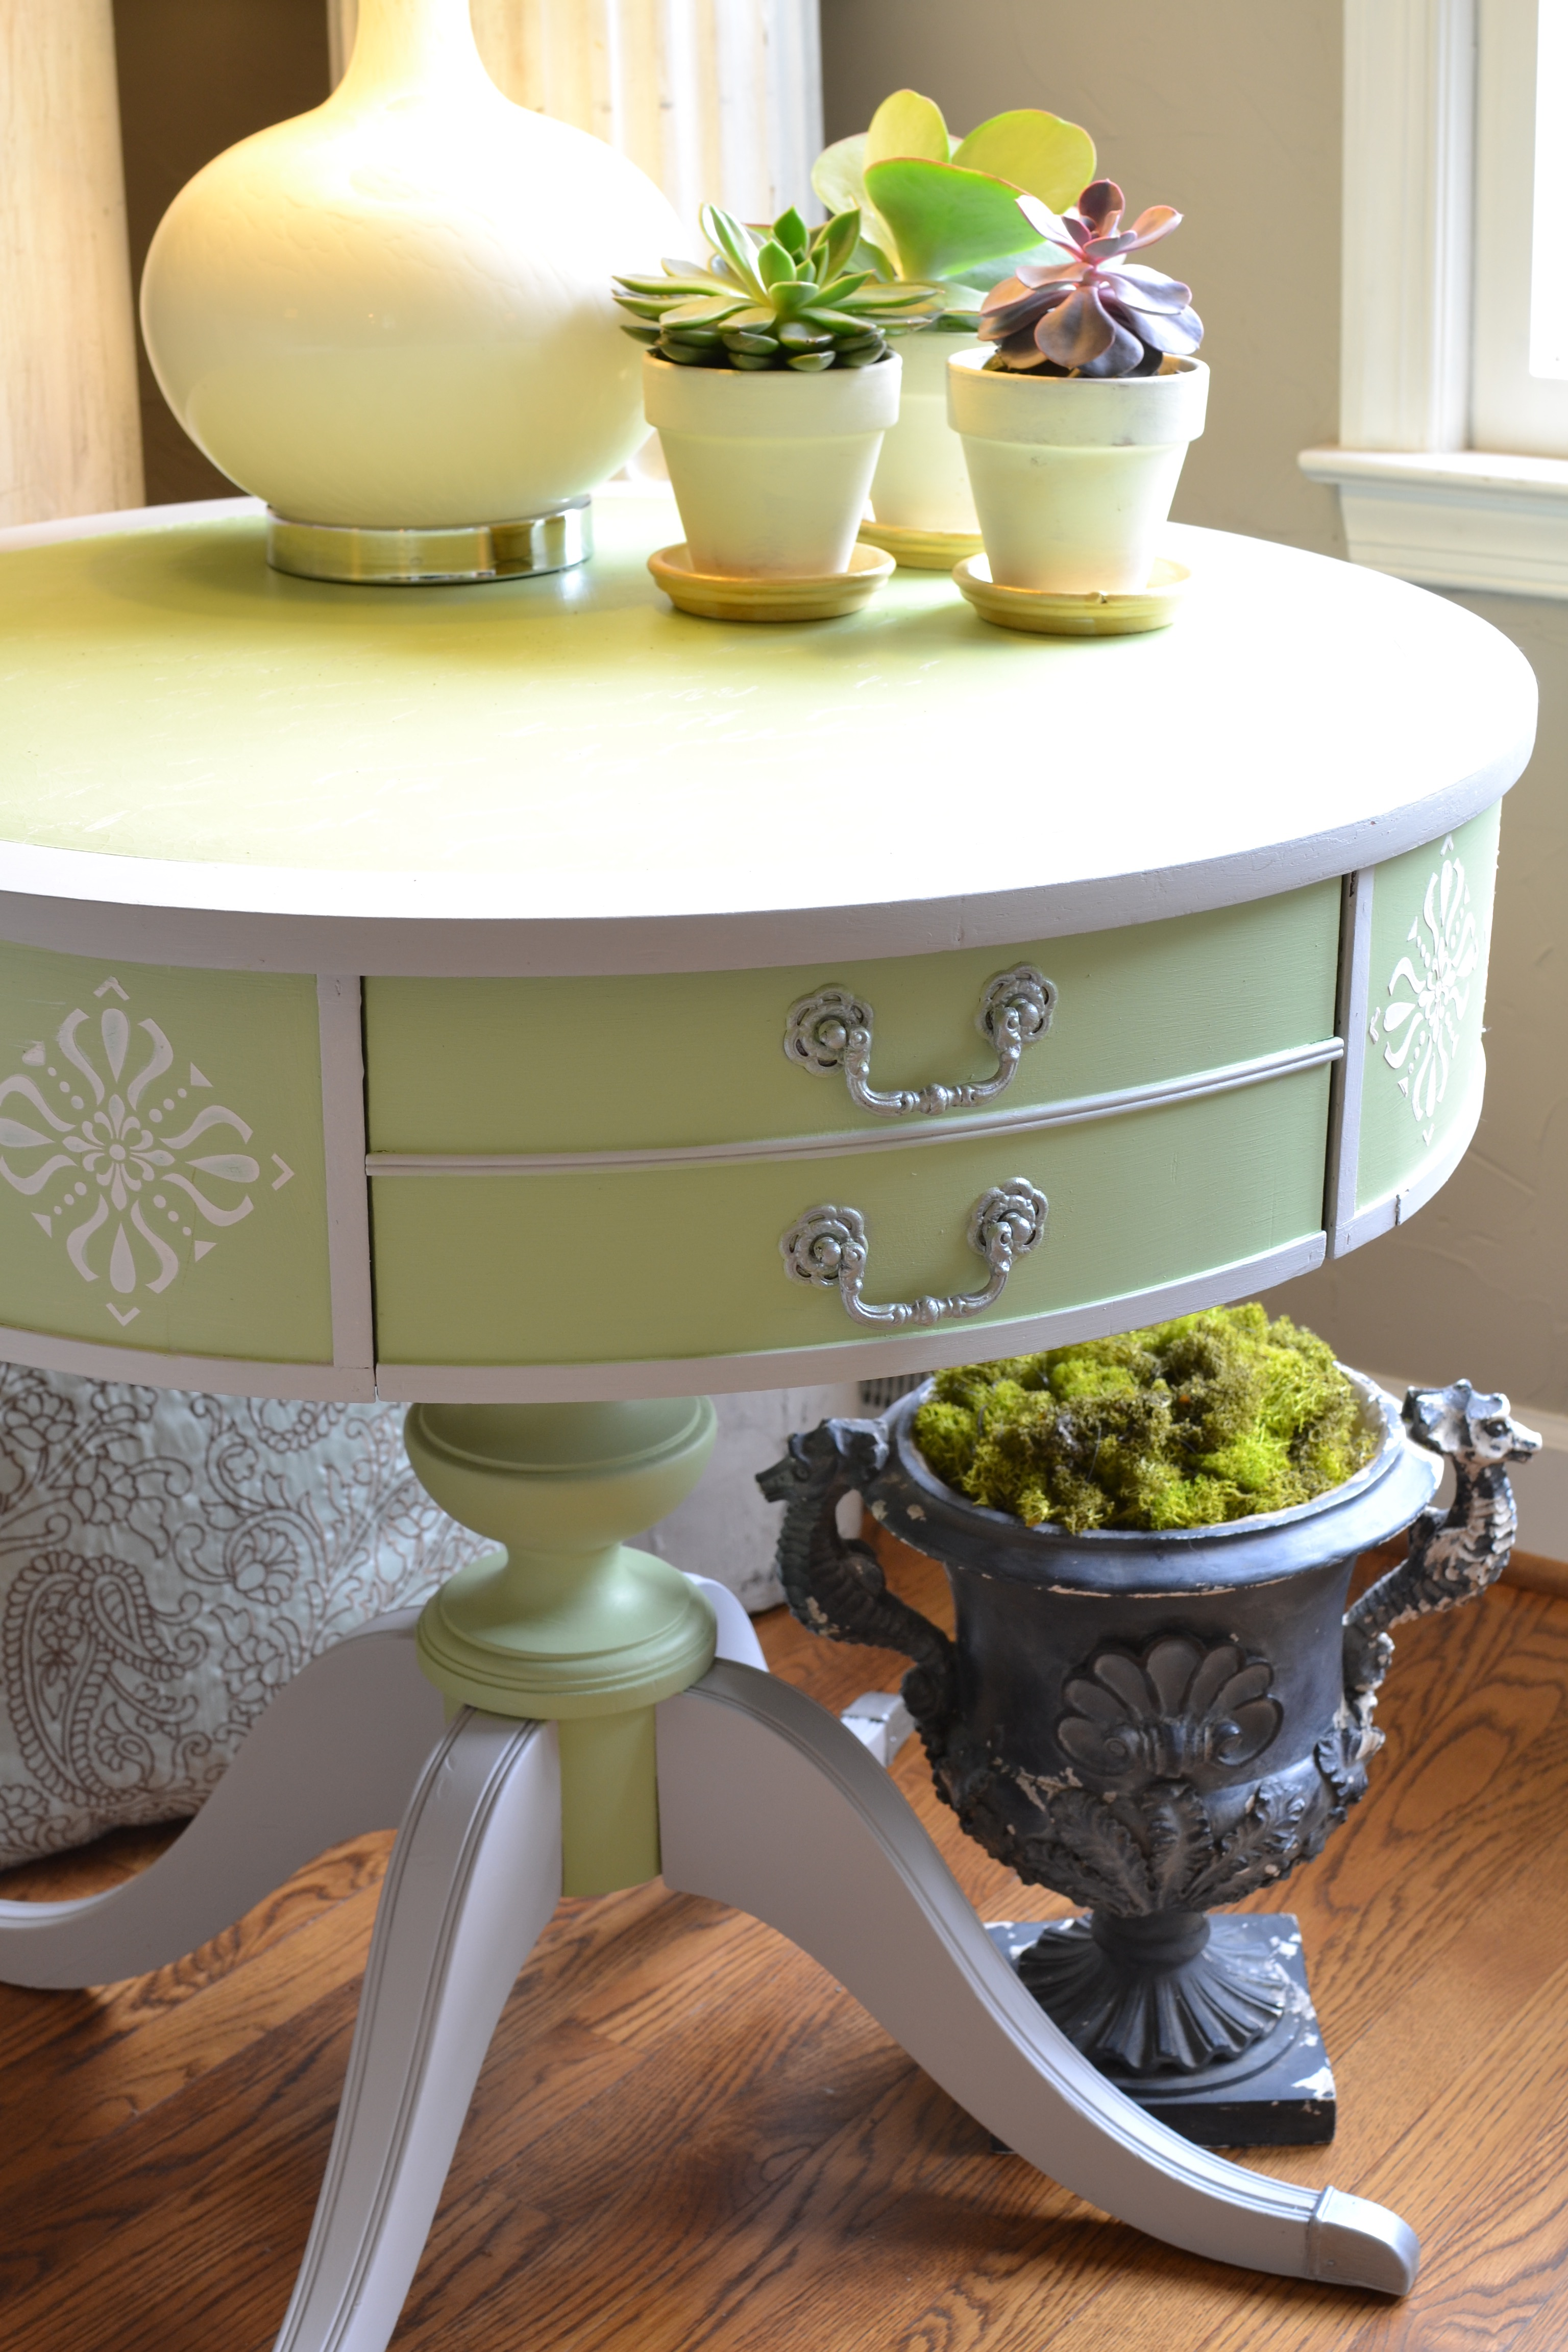 My Patch Of Blue Sky | Upcycle An Old Table Using Paint, Stenciling, And Texture